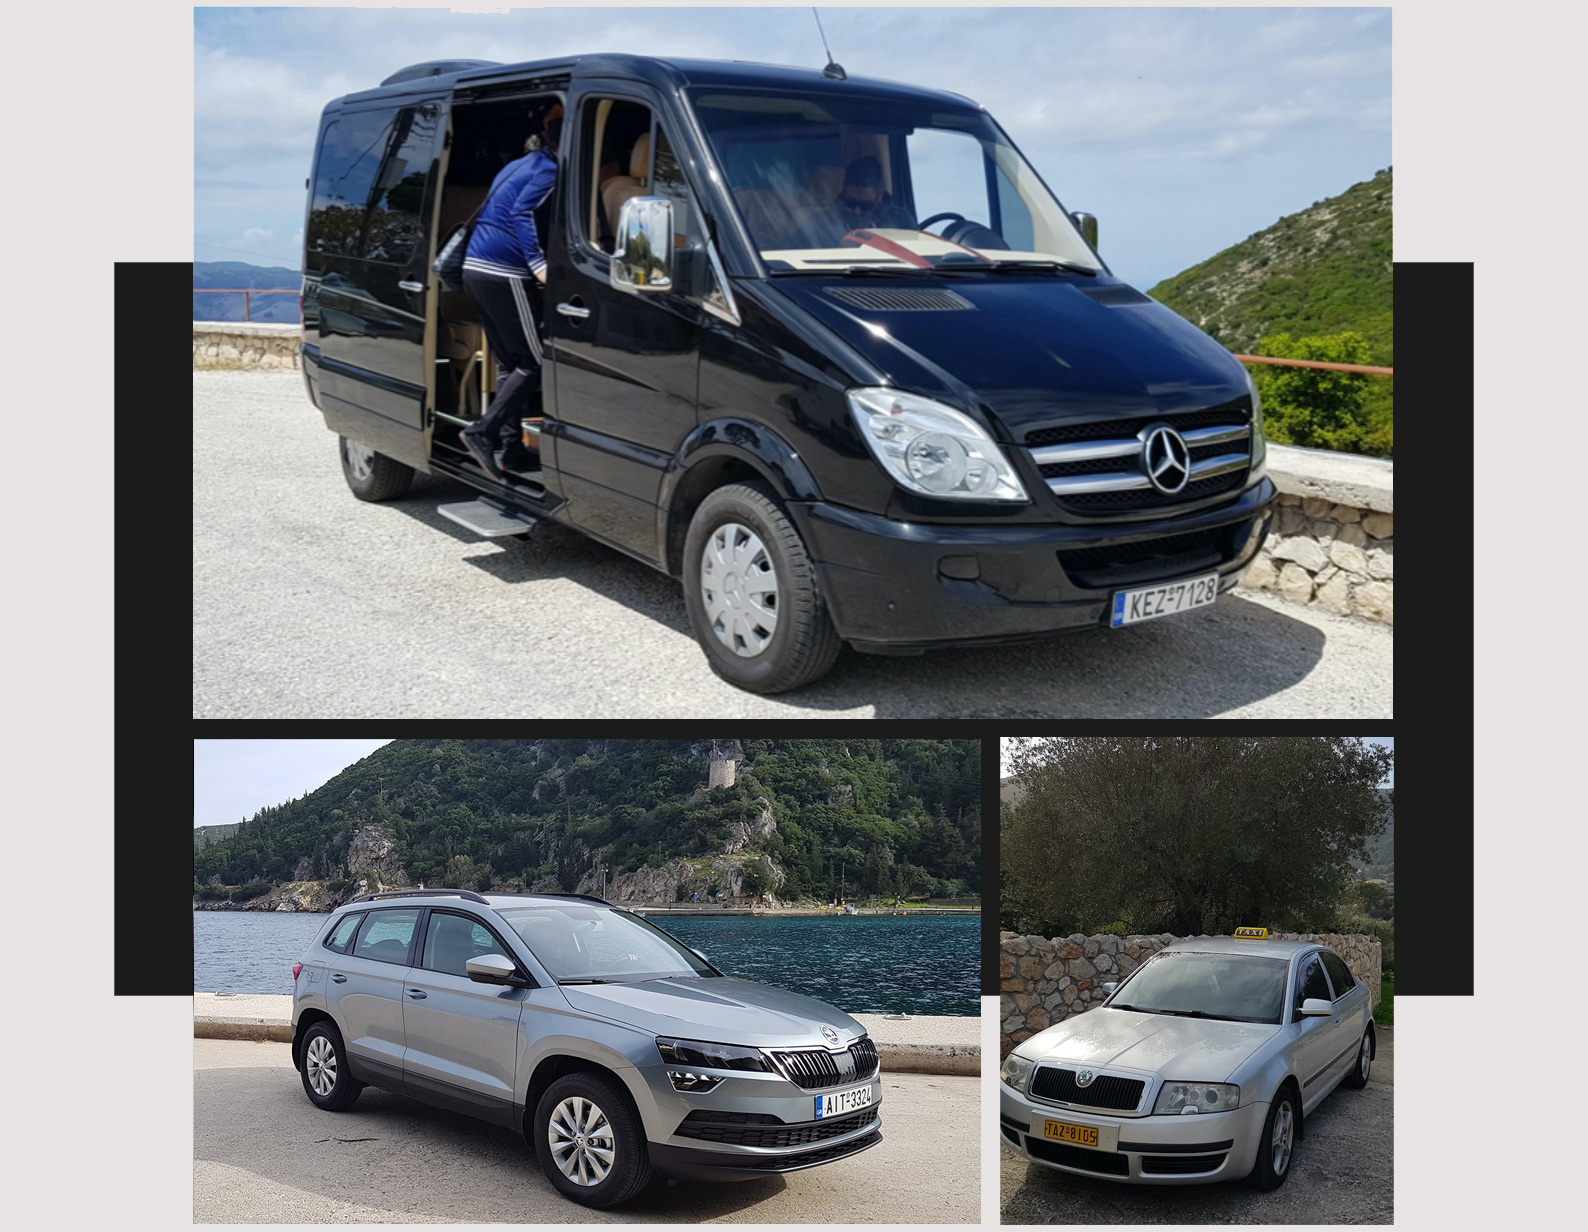 Ithaca Transfers - Ithaca Tours - Ithaca Private Tours - Ithaca Taxi - Ithaca Minibus - Ithaca Private Transfers - Ithaca chauffeur services - Ithaca Island Tour - Taxi Ithaca Greece - Taxi Transfers Ithaca